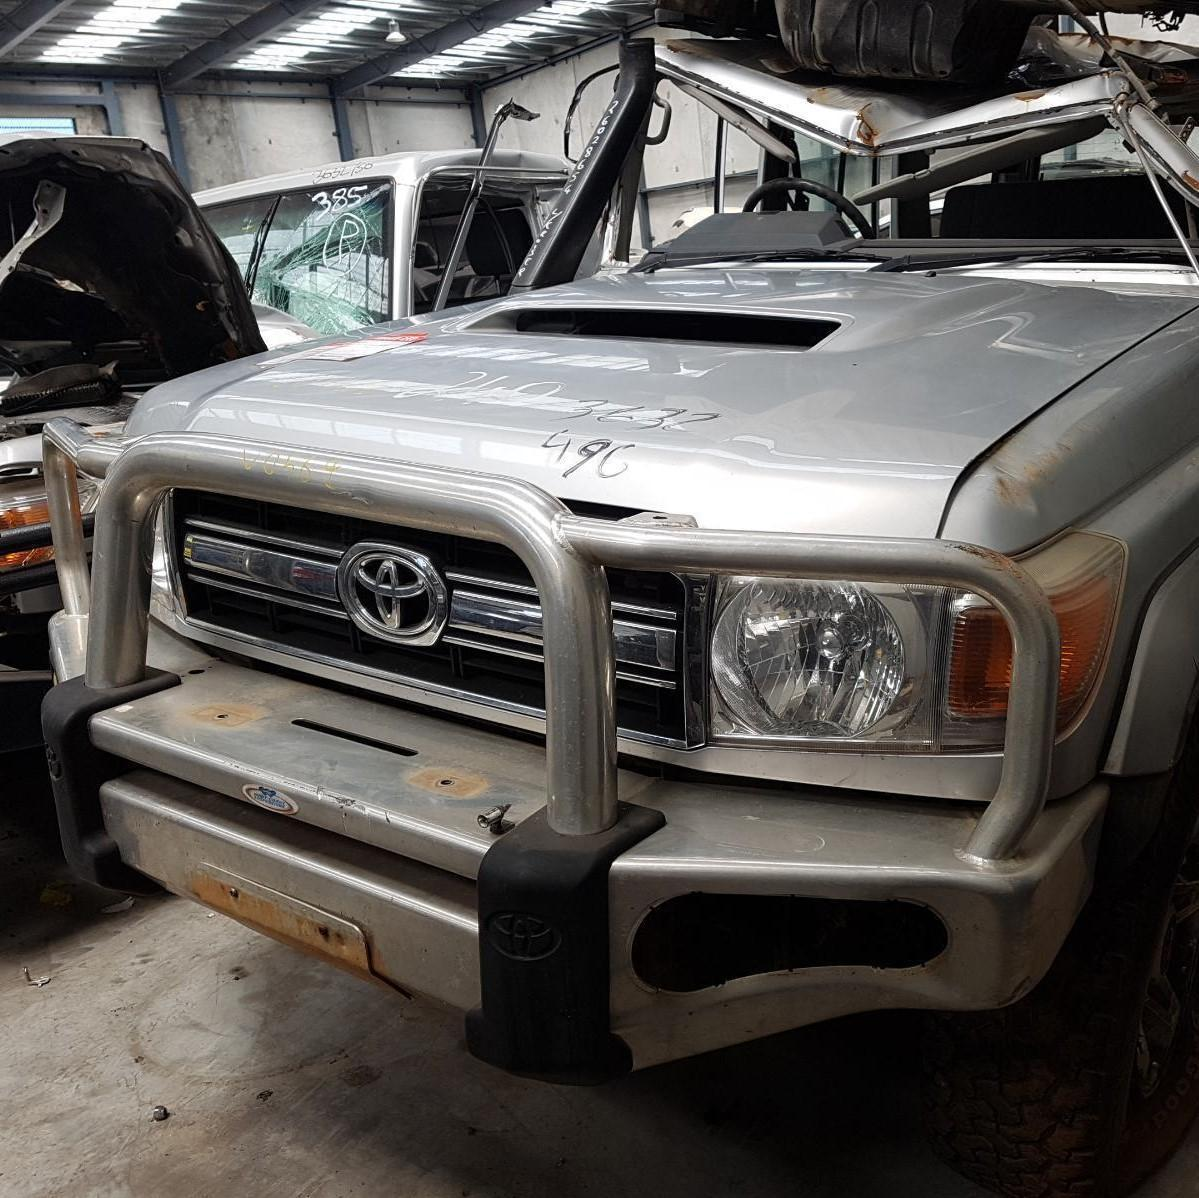 TOYOTA LANDCRUISER, Bonnet, 76/78/79 SERIES (UPDATE), 03/07-09/16